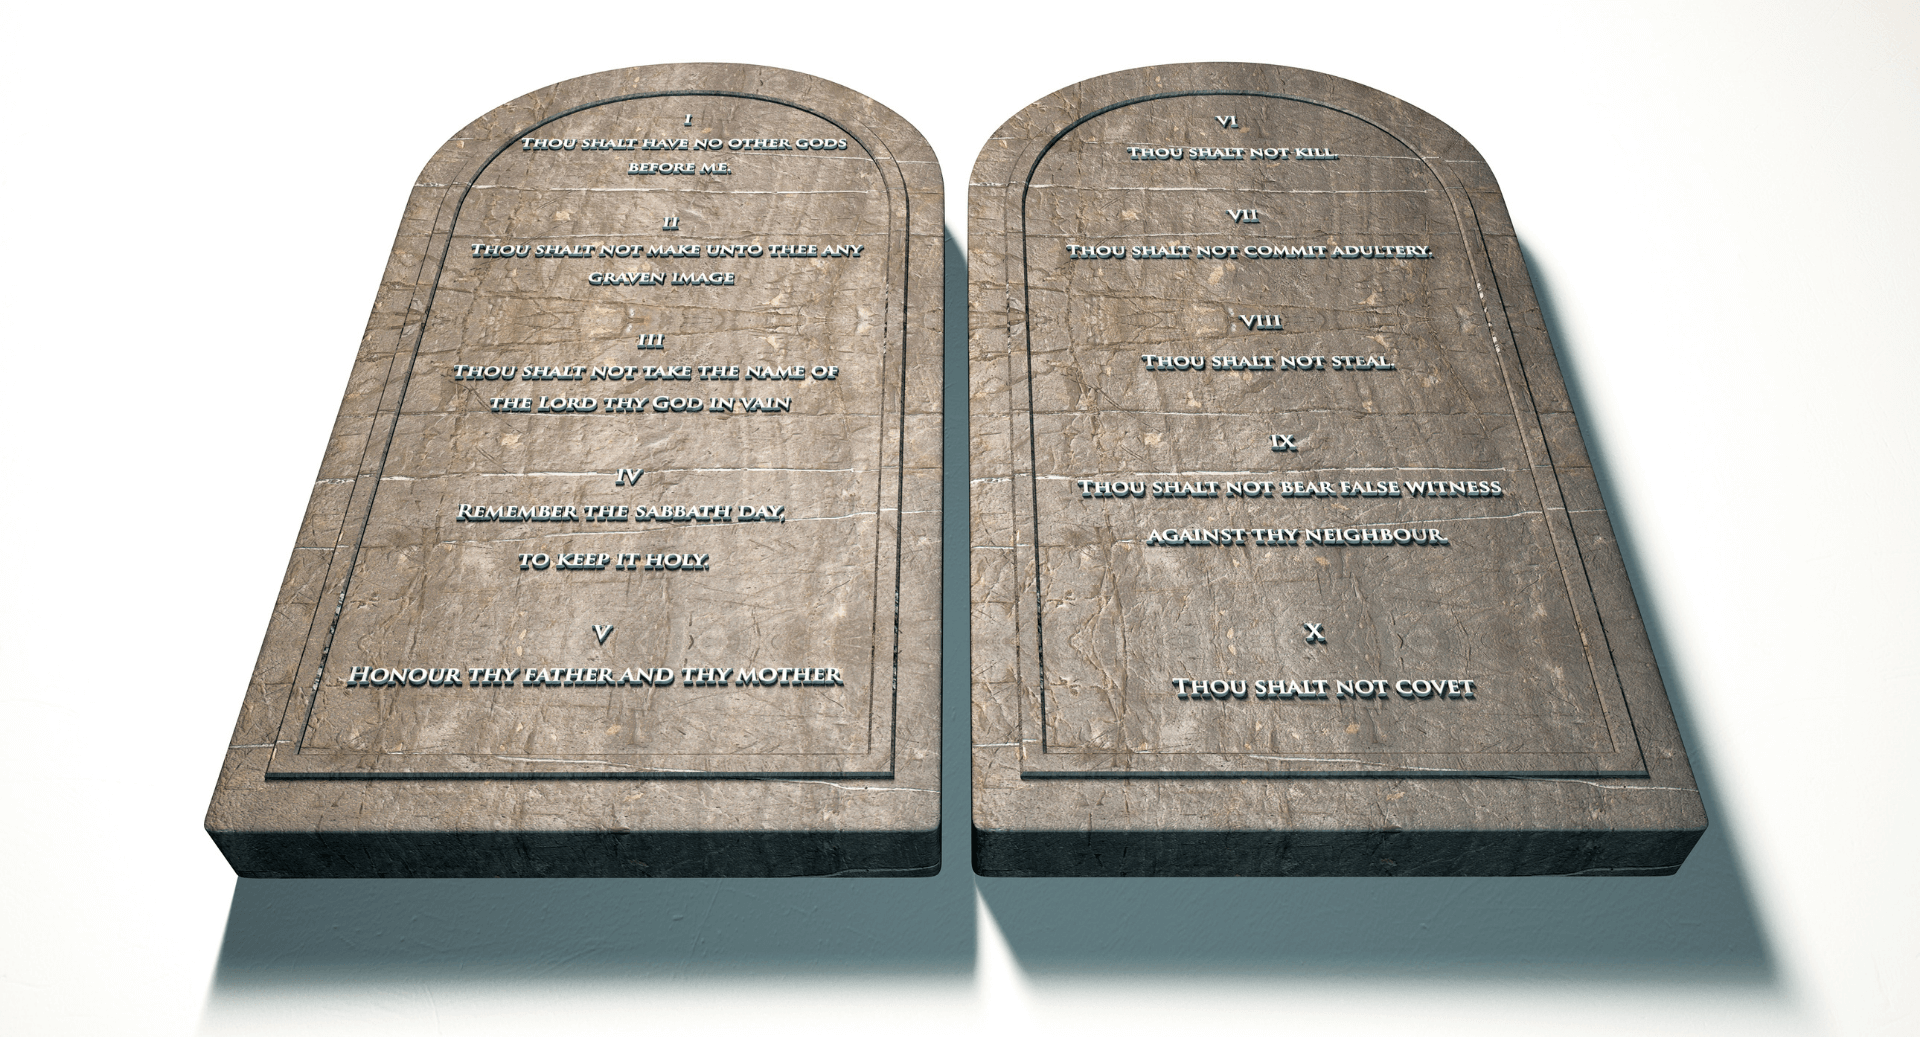 The 10 Commandments on 2 Tablets